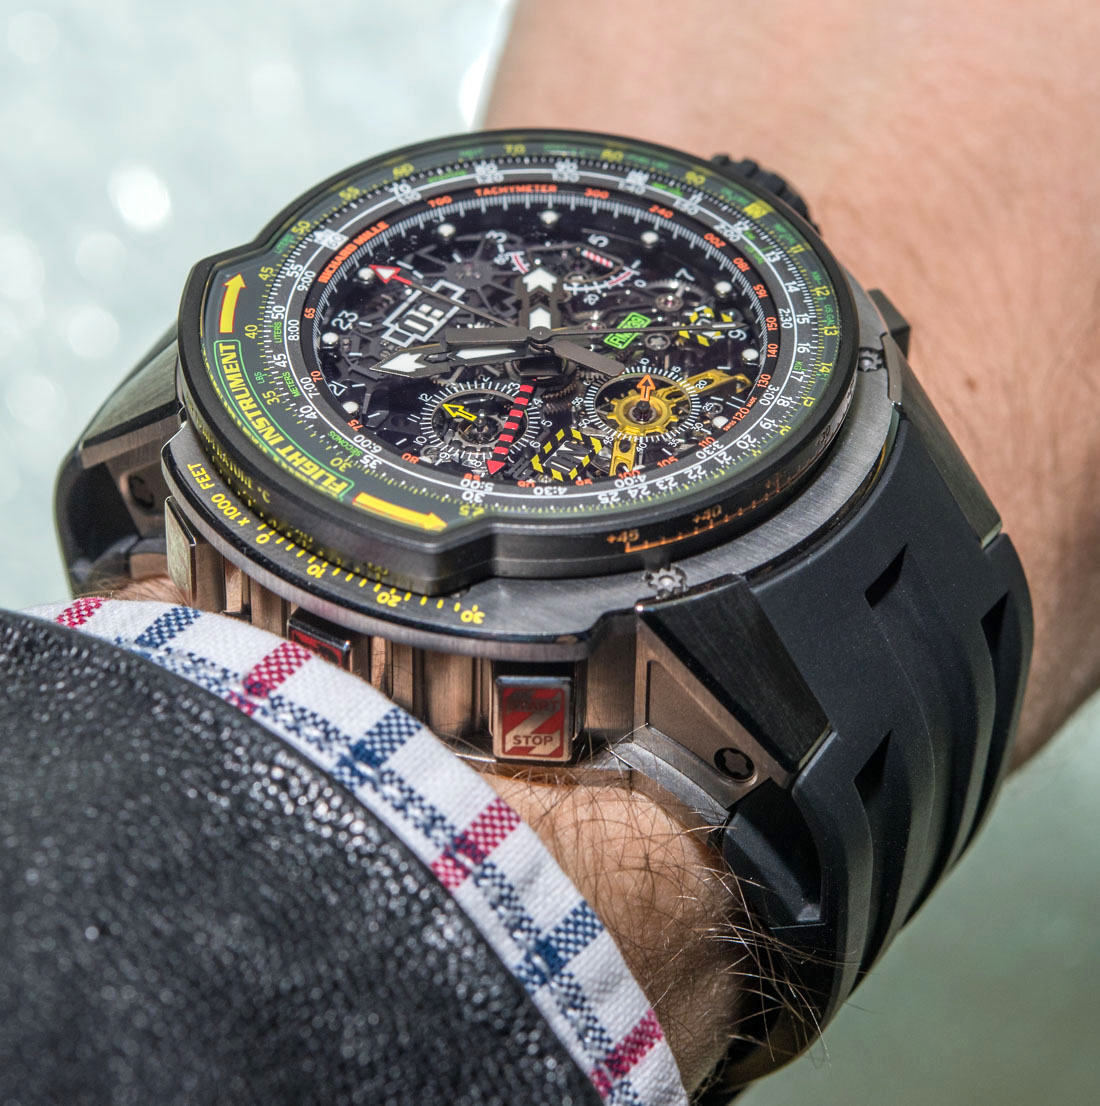 Richard Mille RM 039 Tourbillon Aviation E6-B Flyback Chronograph Watch Hands-On Hands-On